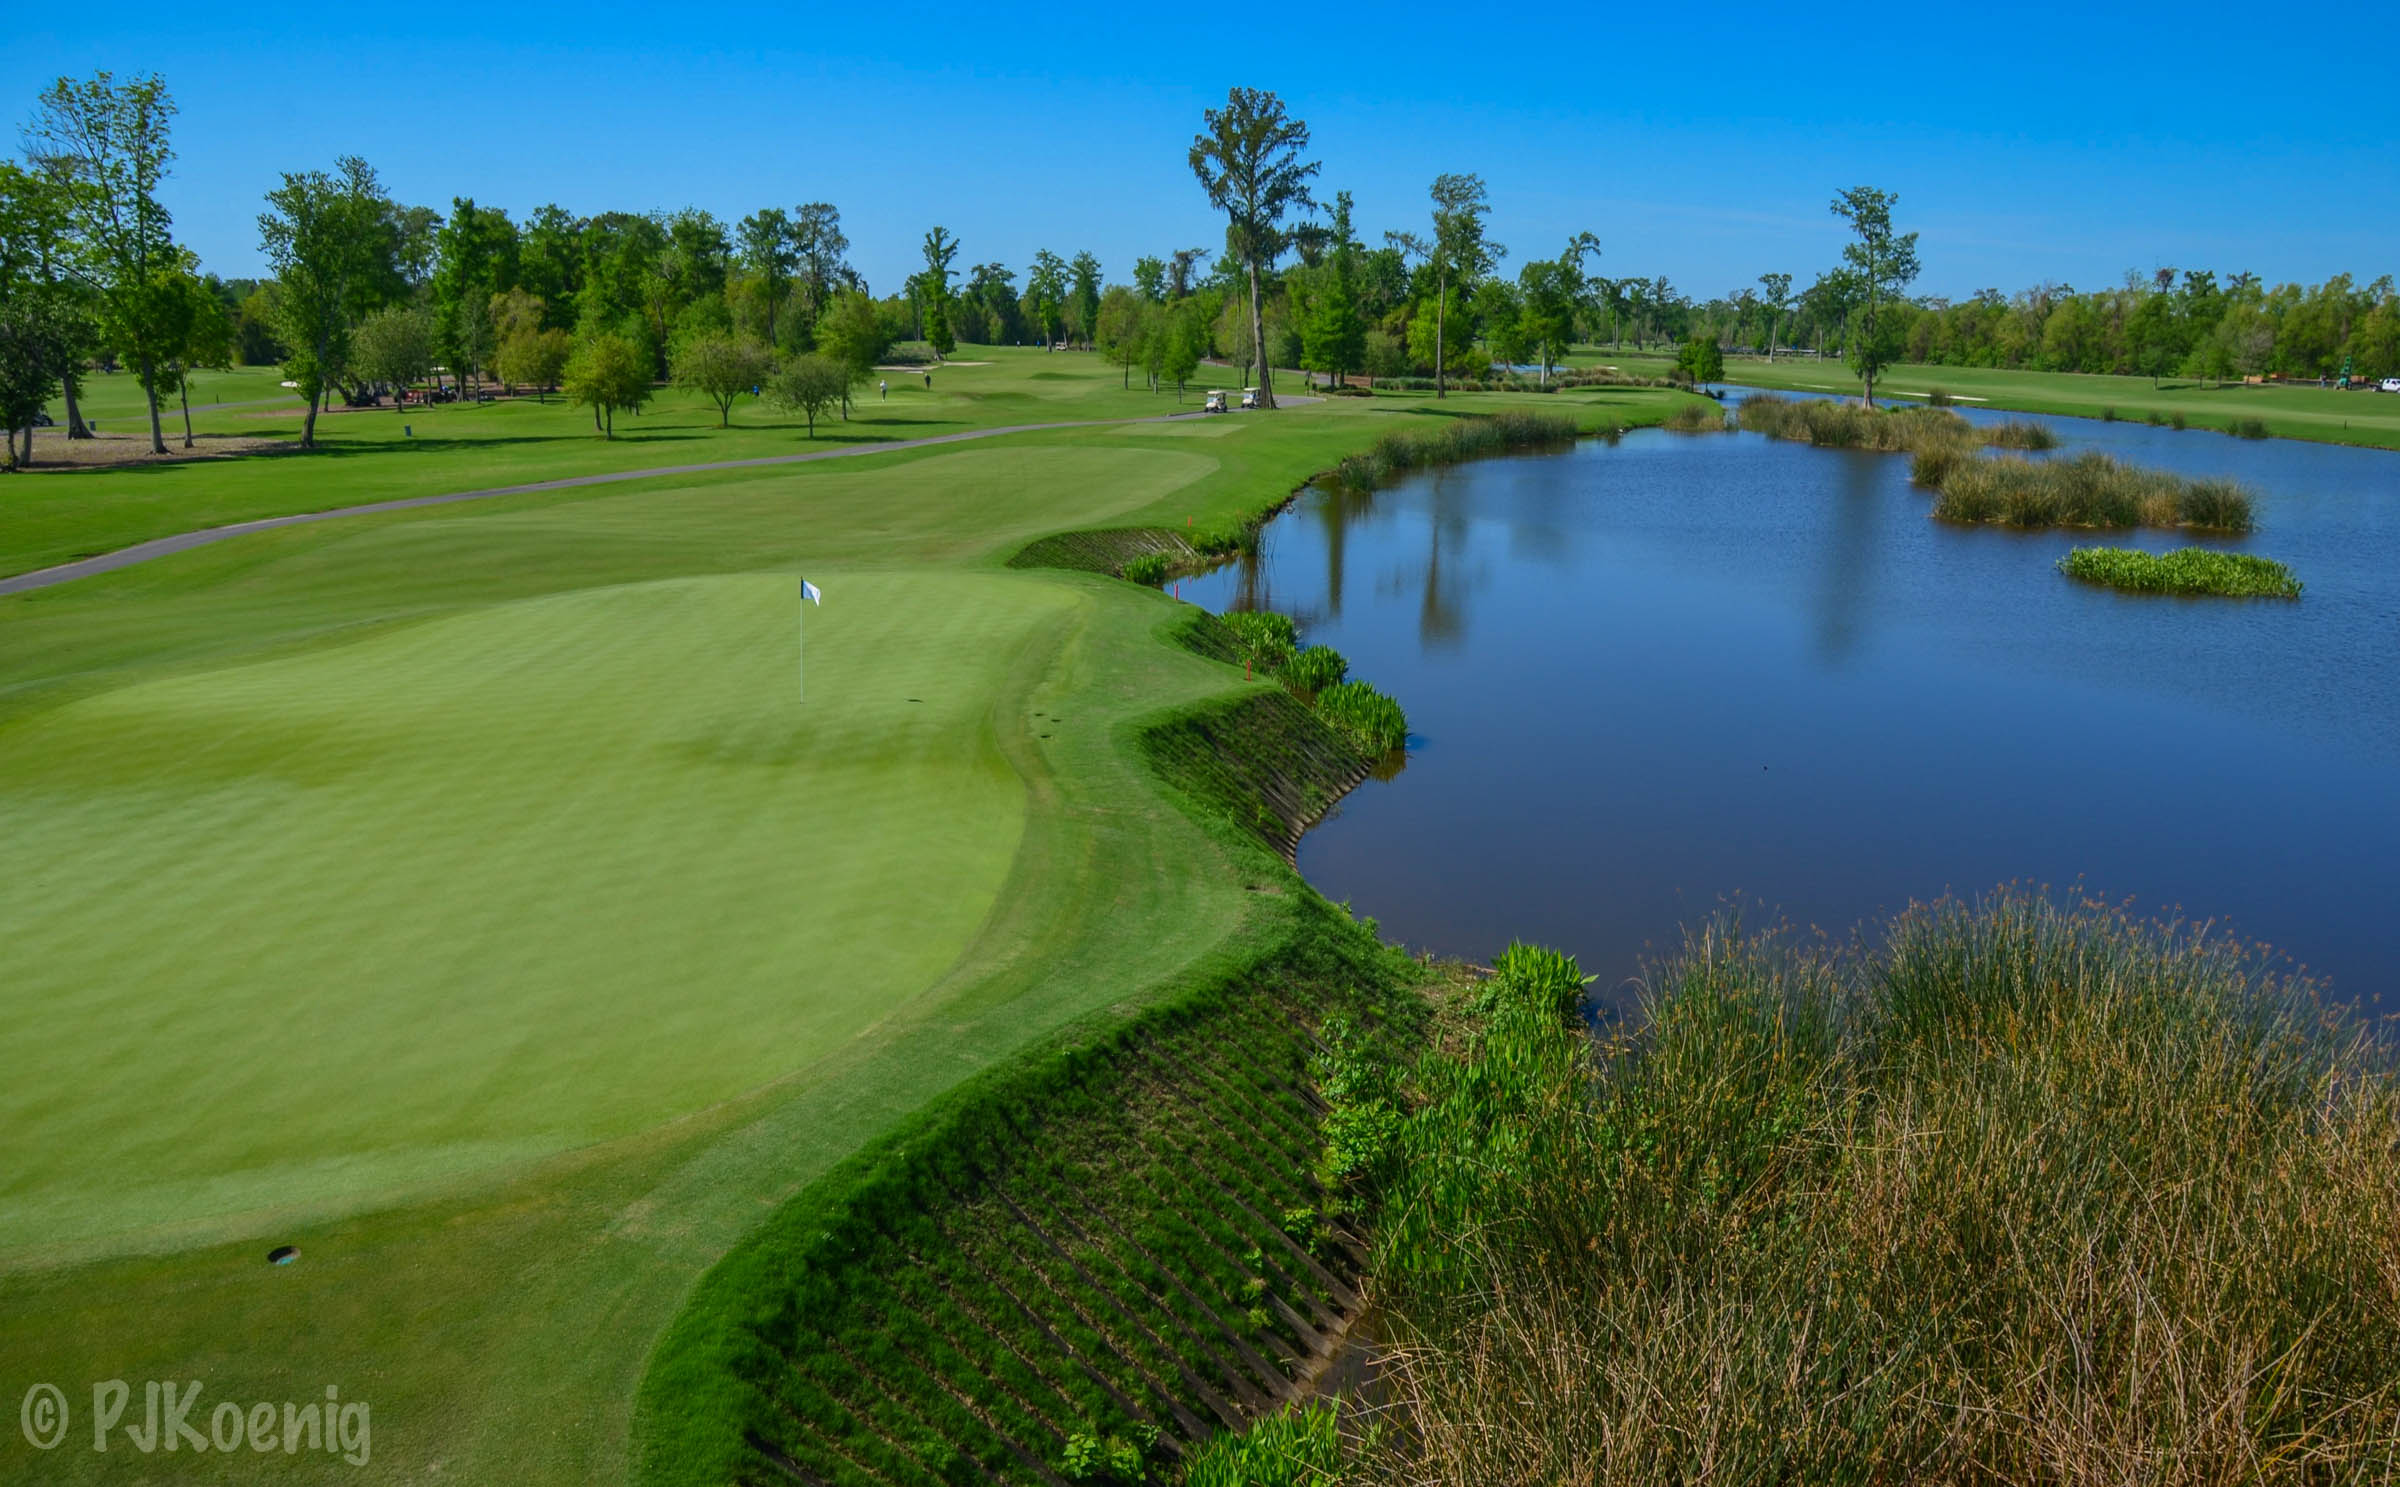 The difficult 9th at TPC Louisiana